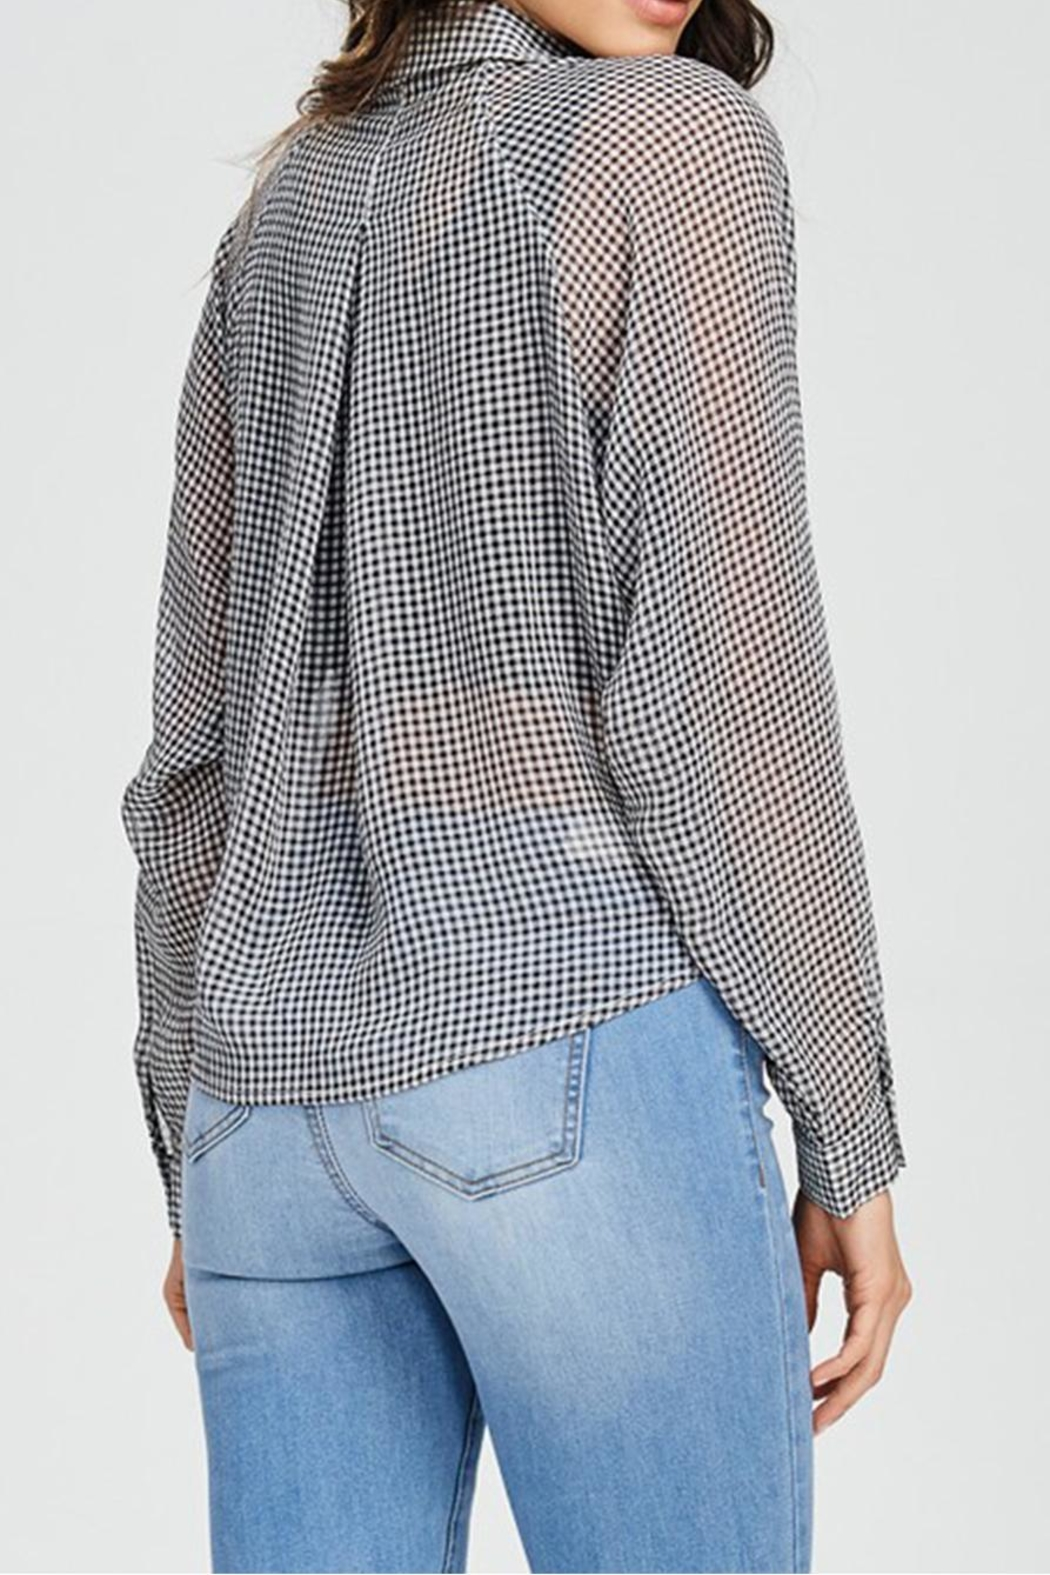 Emory Park Plaid Tie Top - Back Cropped Image